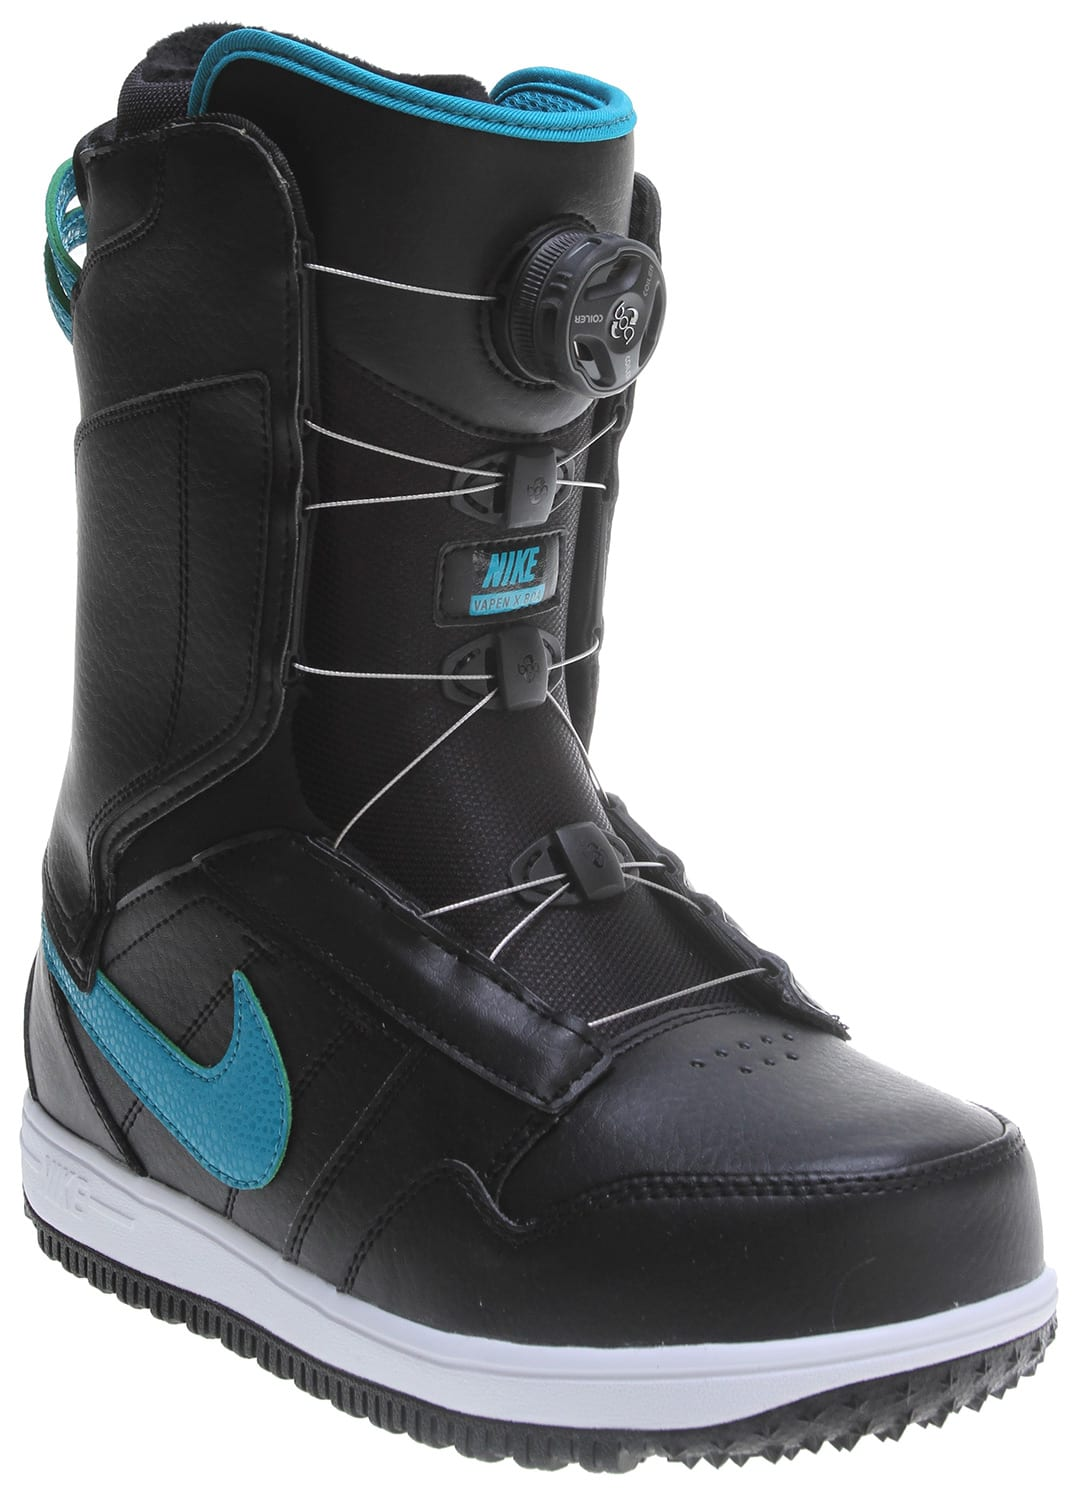 on sale nike vapen x boa snowboard boots womens up to 55